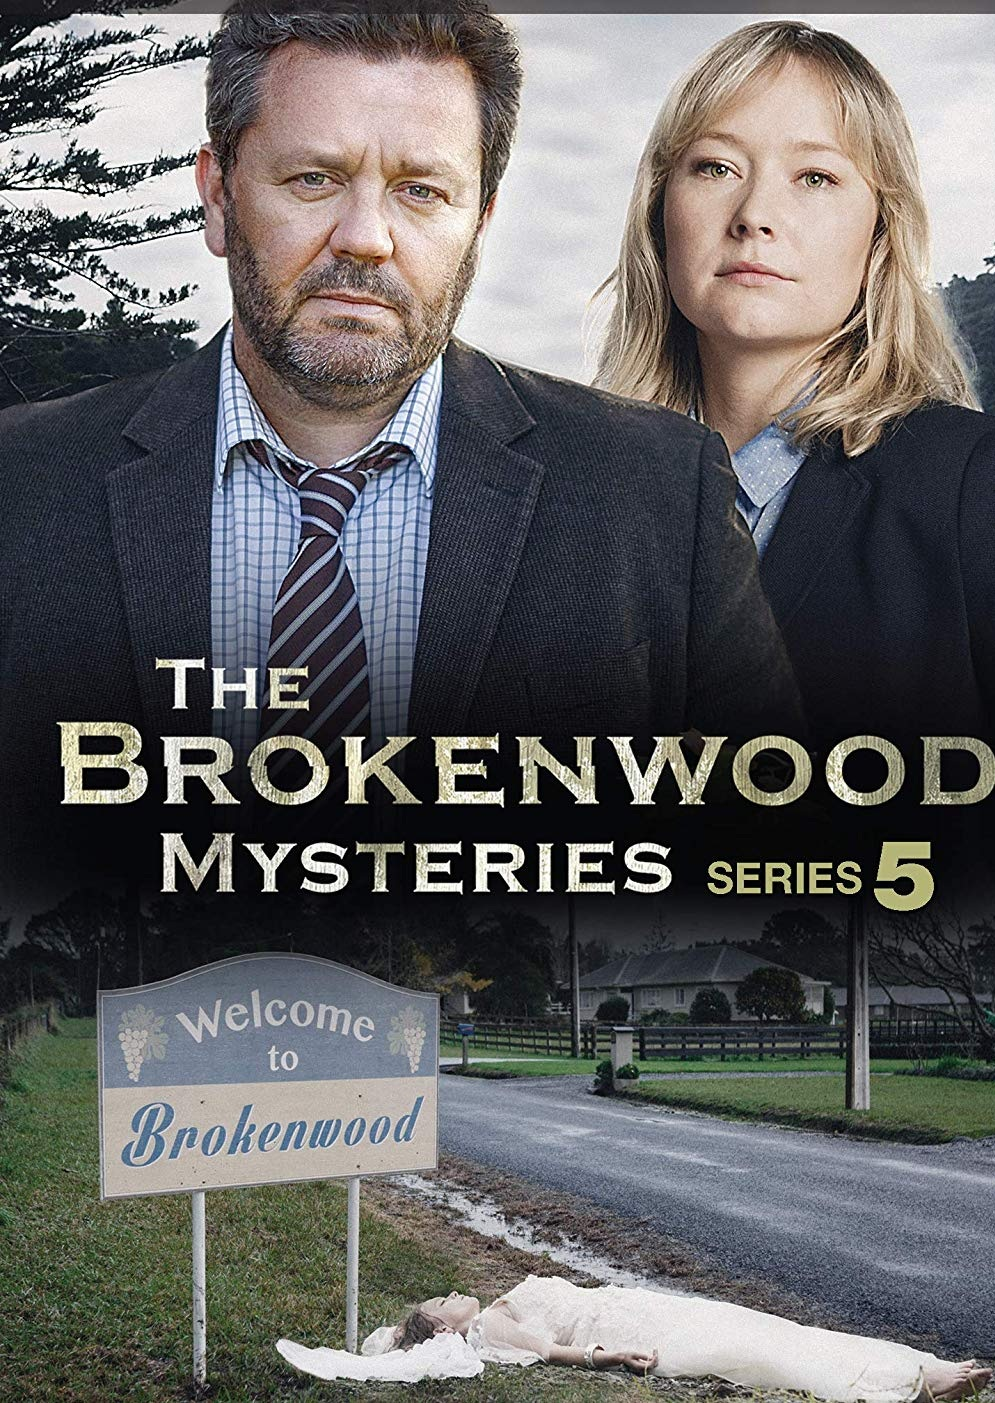 Brokenwood Mysteries  Source: Amazon